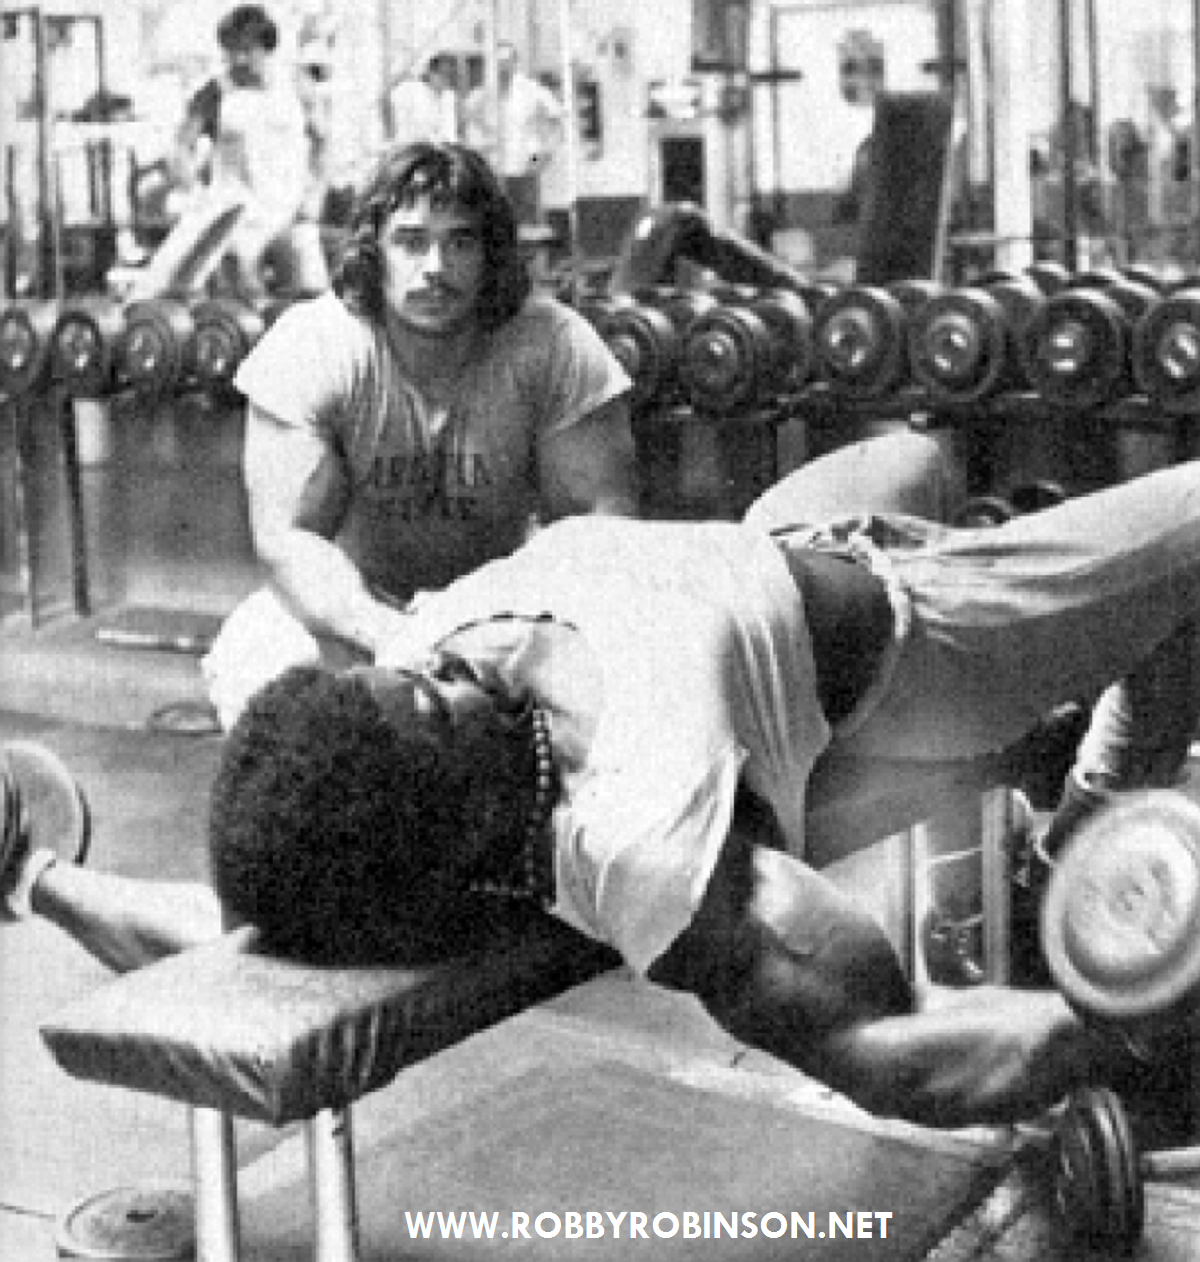 Robby Robinson and Denny Gable - flat bench dumbbell flyes ● www.robbyrobinson.net/motivation.php ●